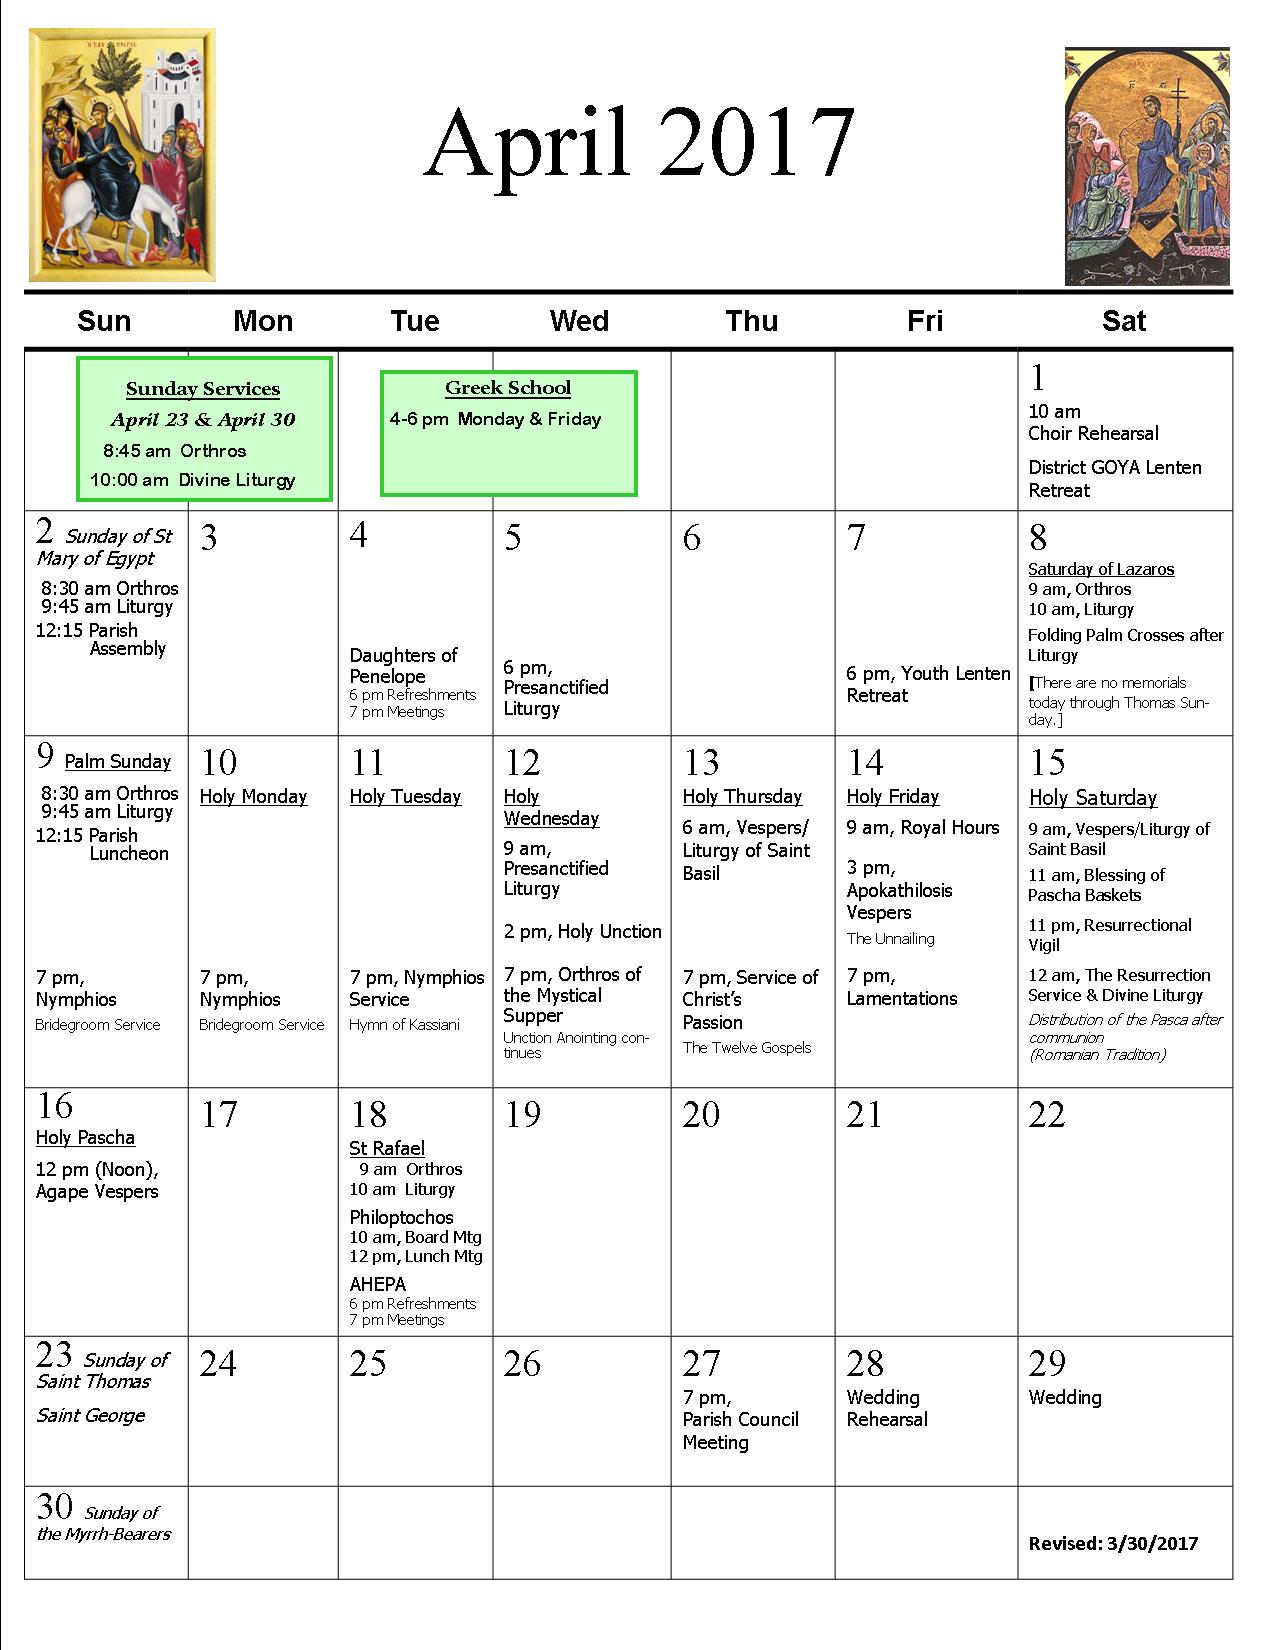 April 2017 Calendar, revised 3-30-17